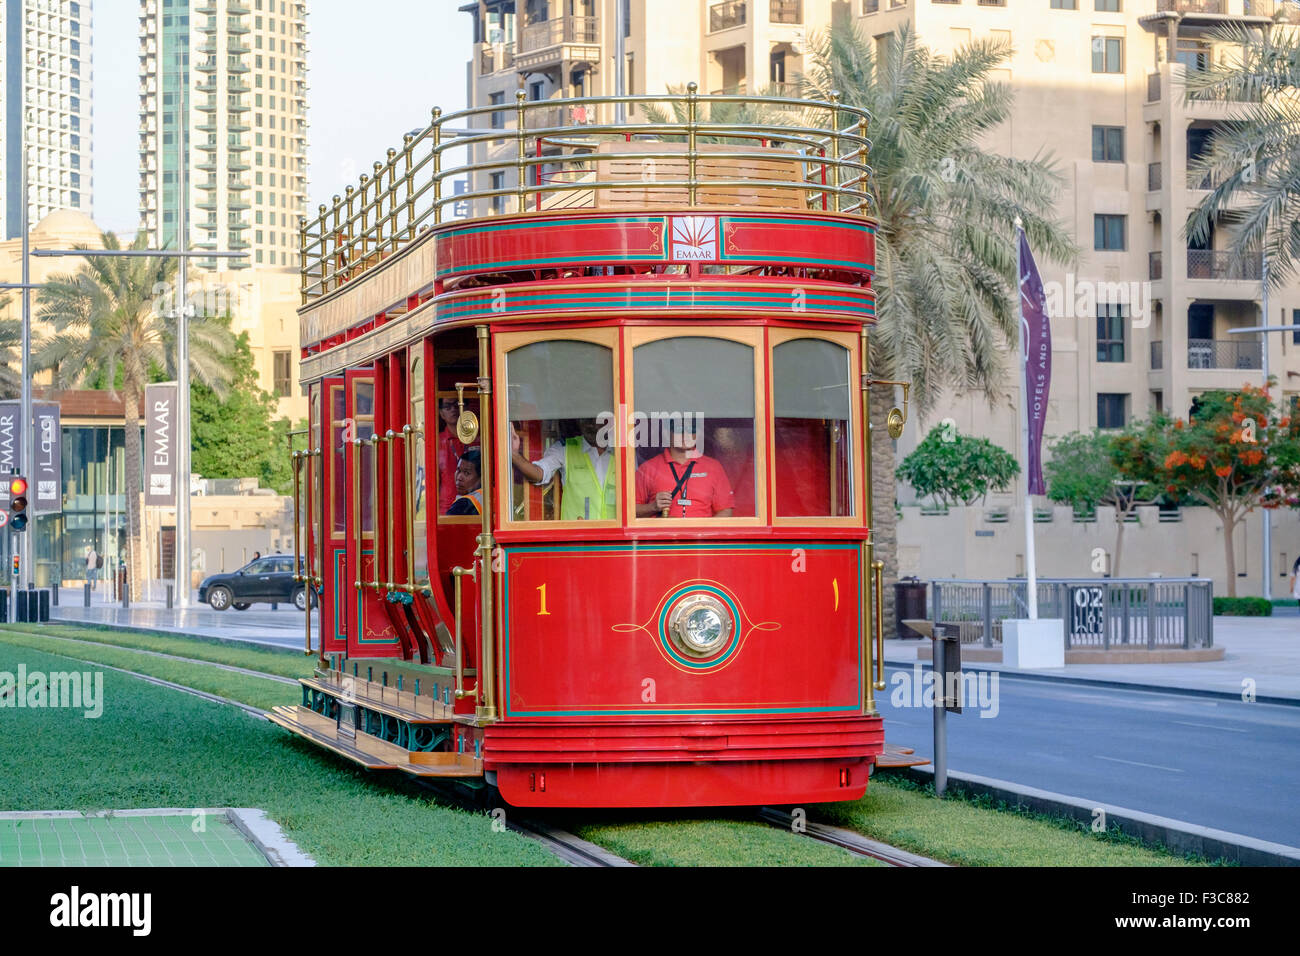 New Dubai Trolley (San Francisco style hydrogen fuel cell powered tram) travelling along street in Dubai United - Stock Image